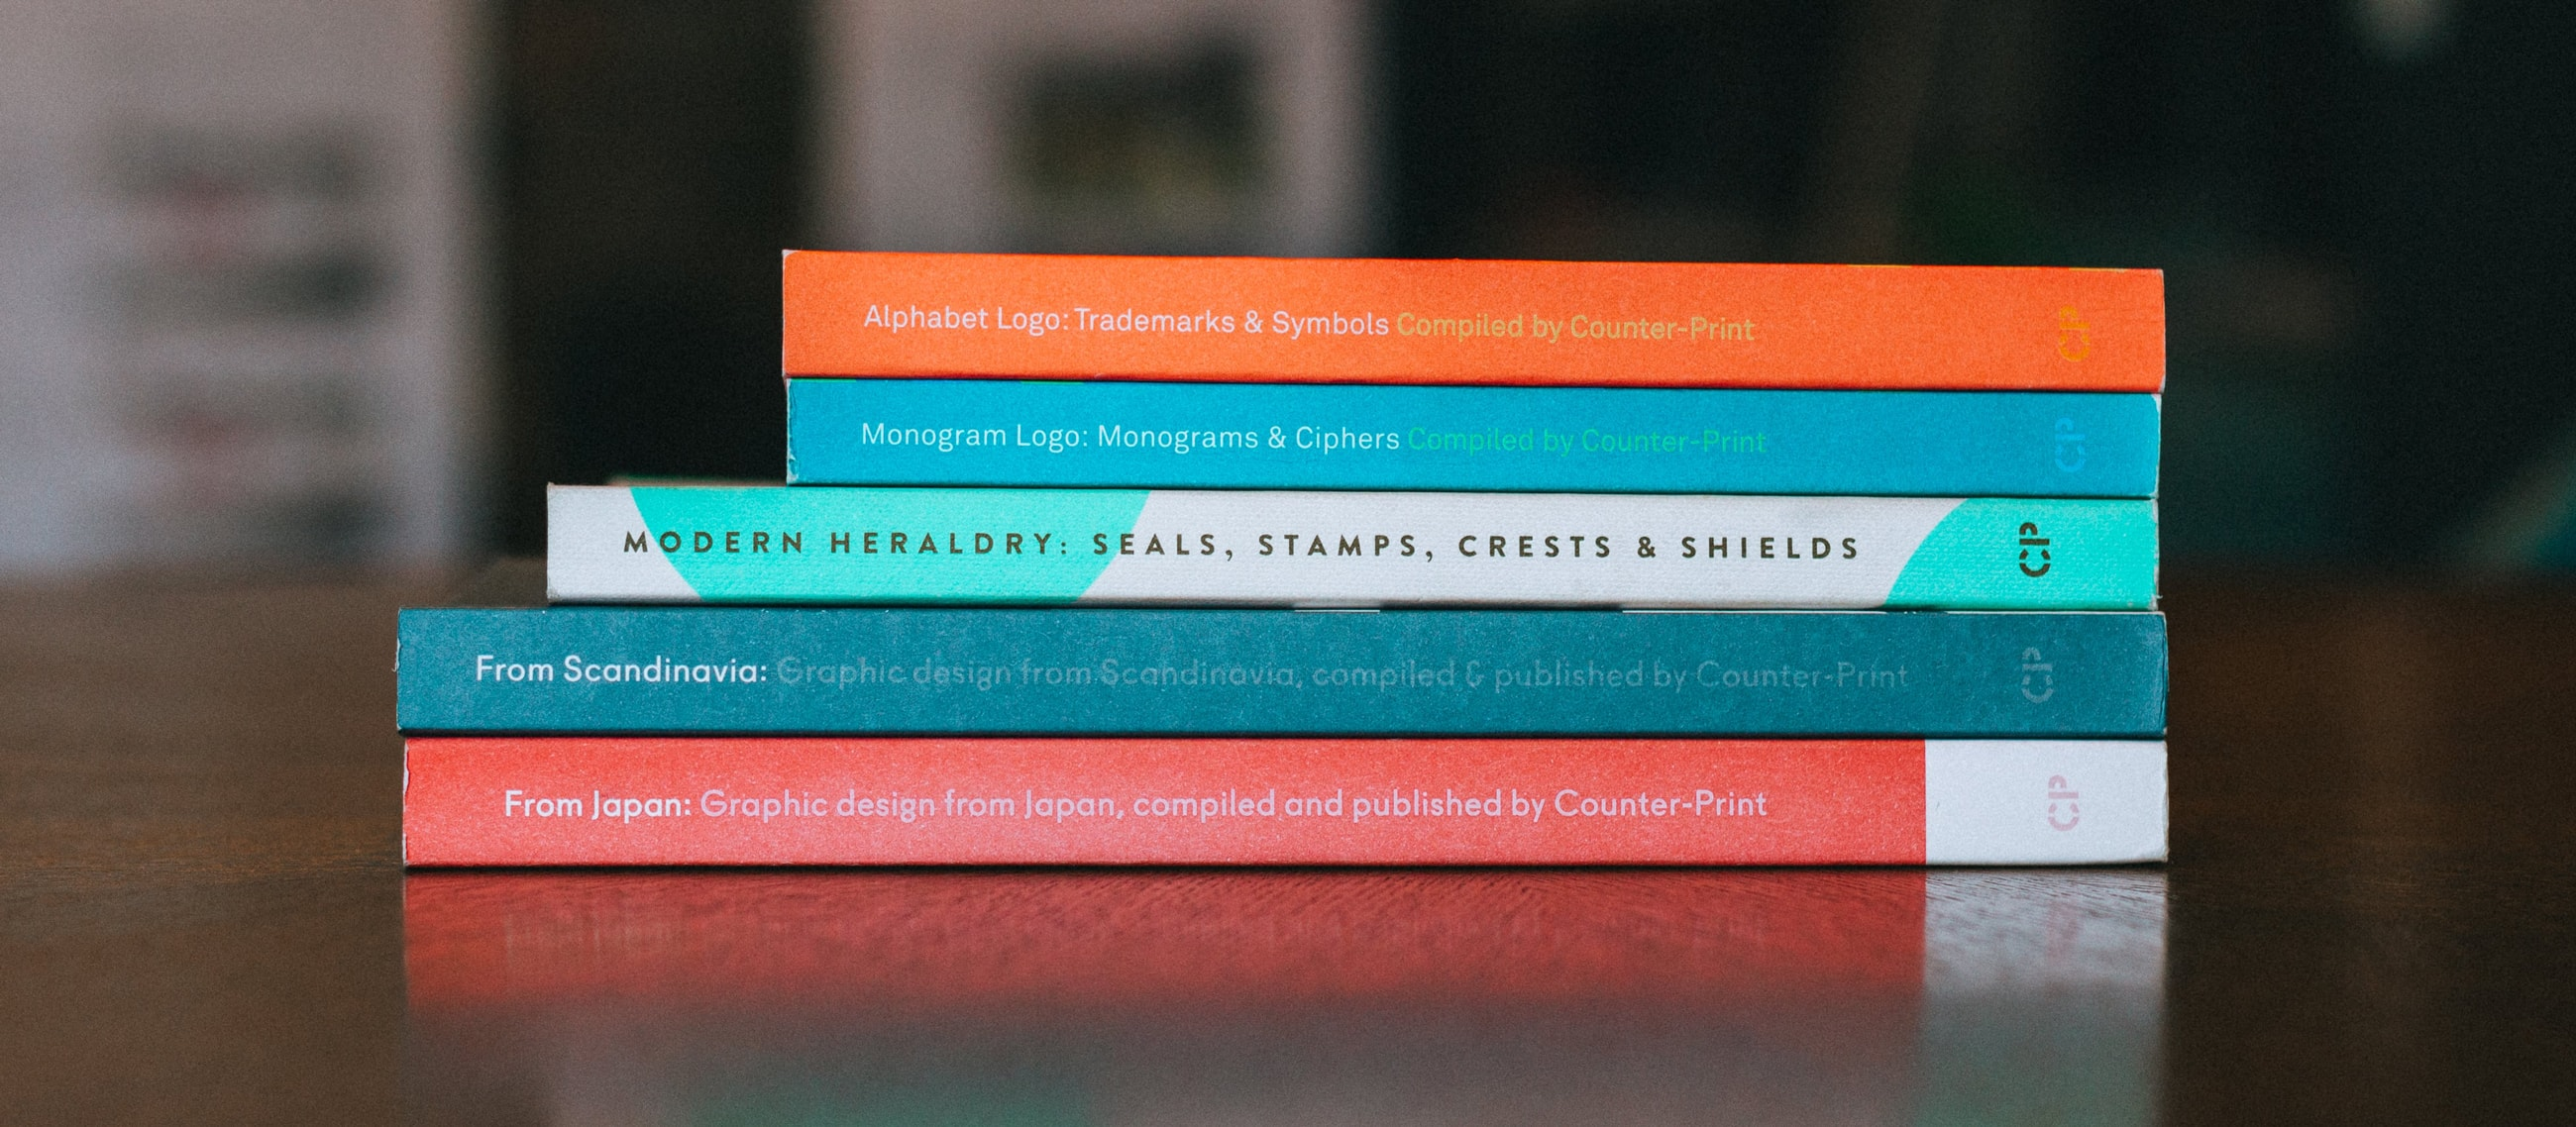 Selection of books by Counter Print